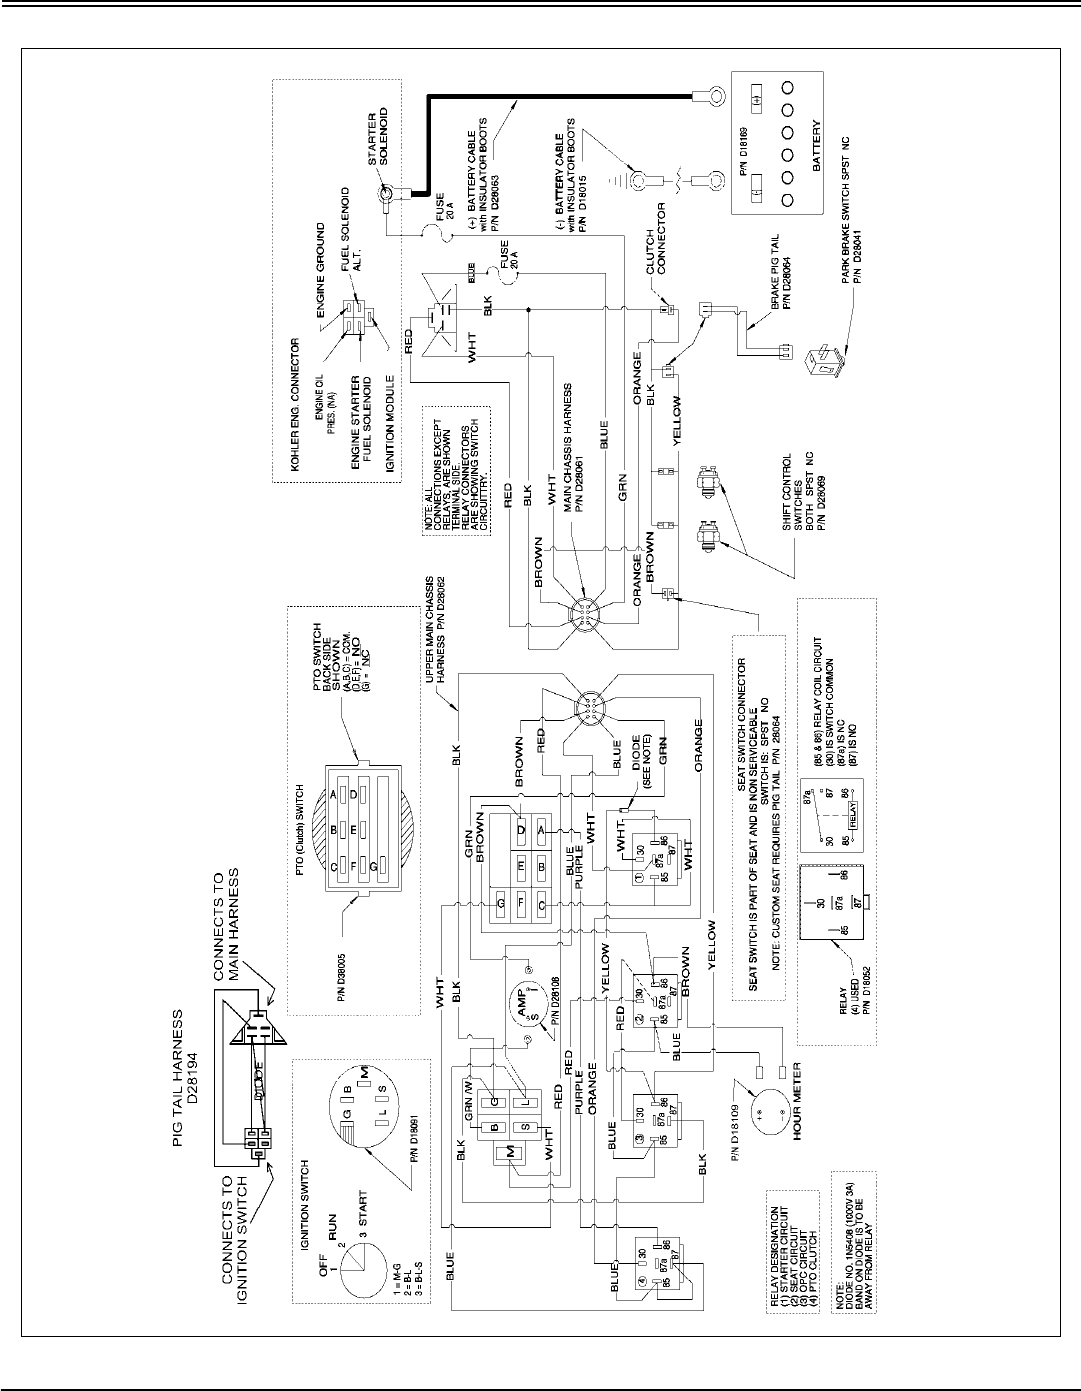 wiring diagram for cub cadet zero turn